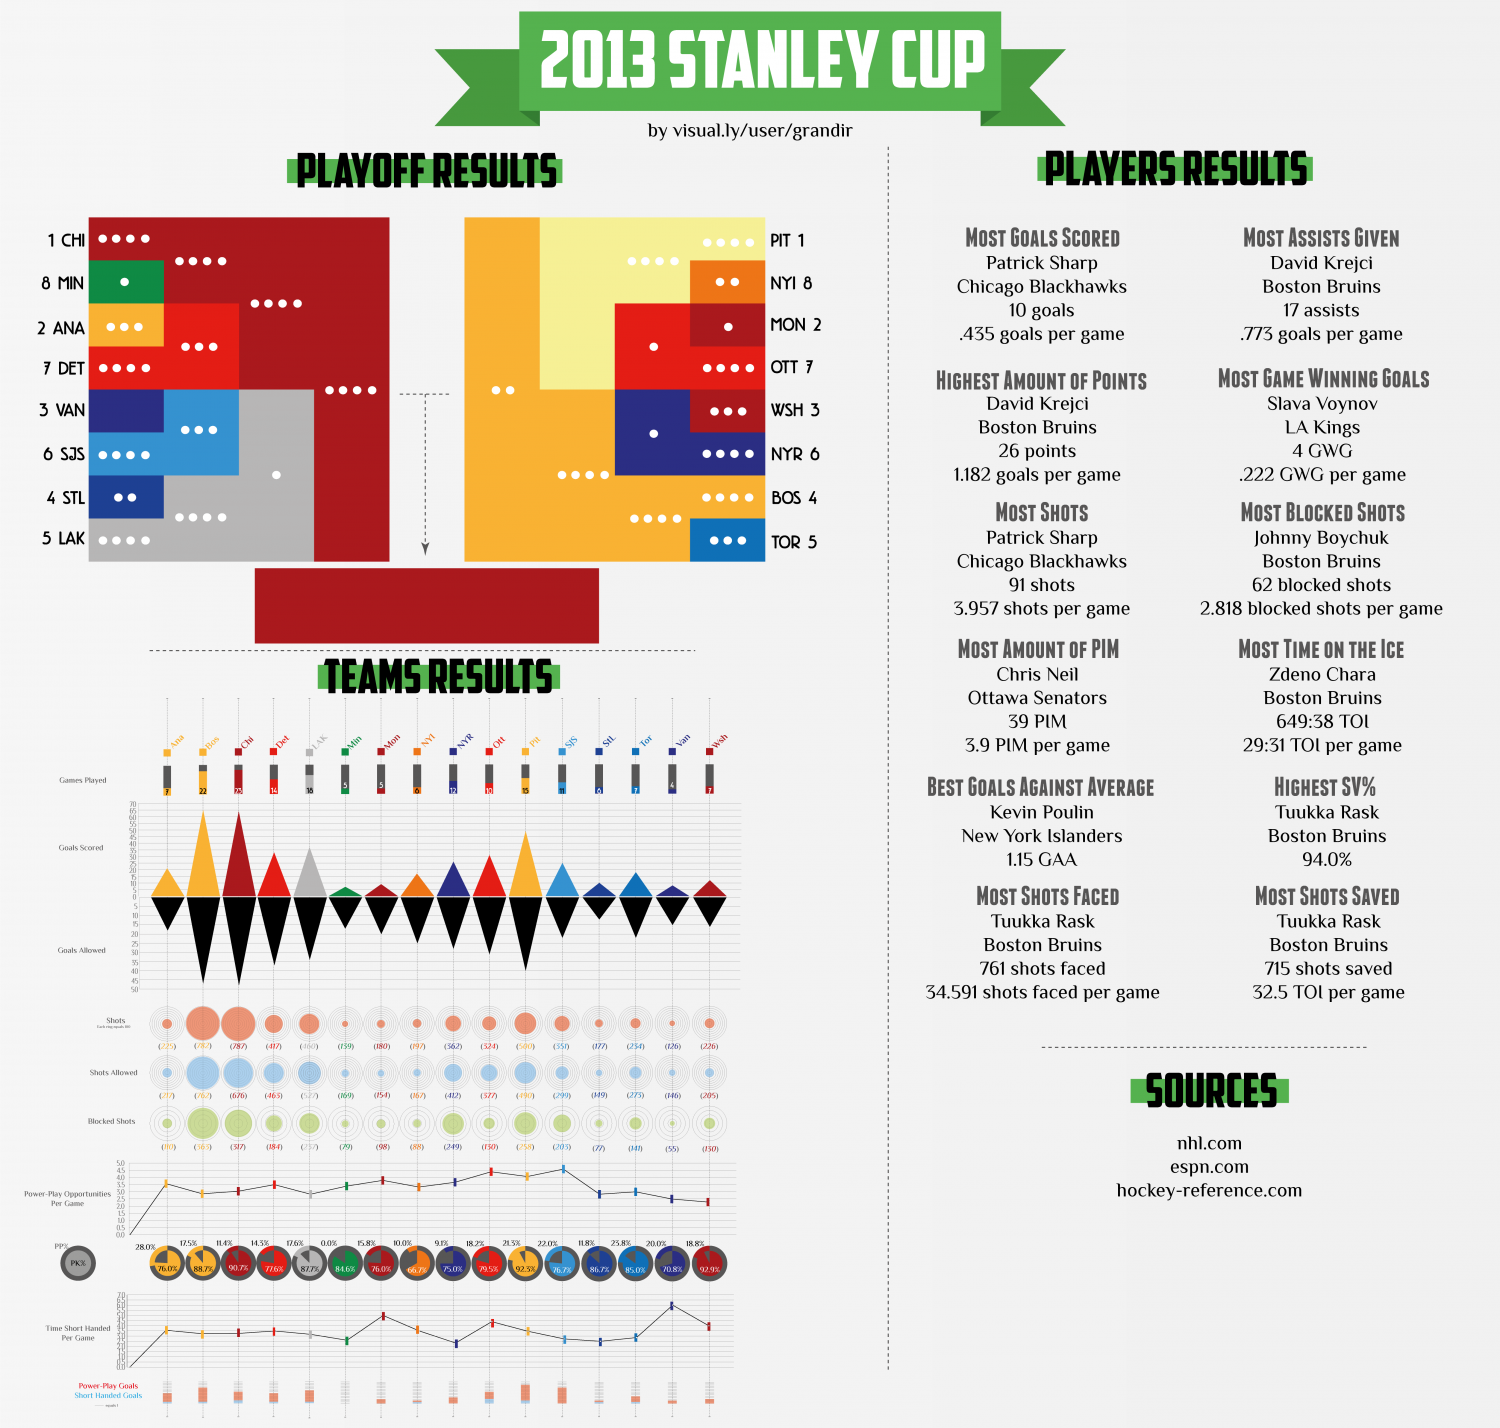 2013 Stanley Cup Playoffs Datagraphic Infographic